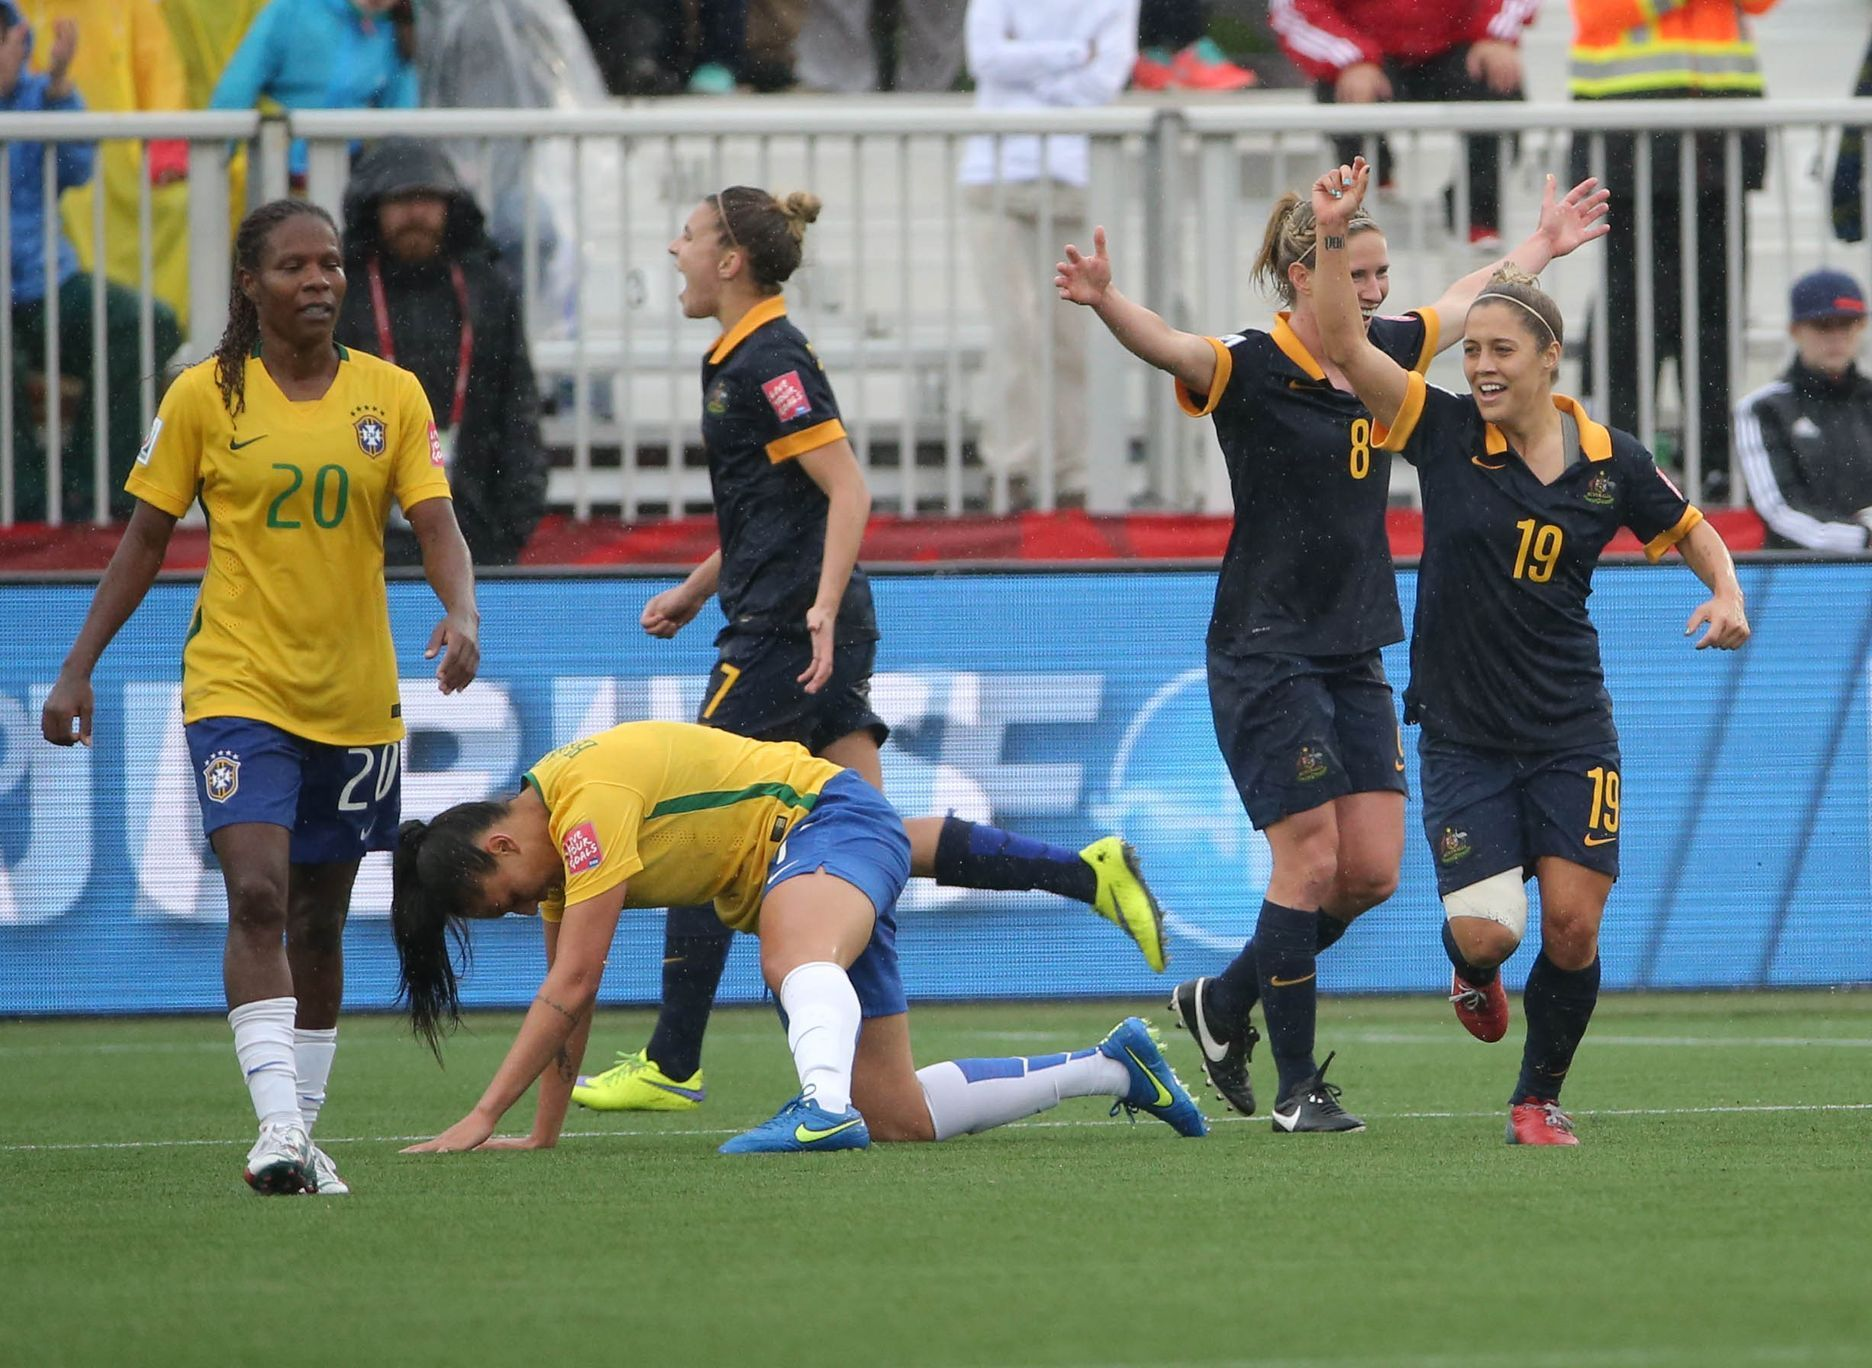 Soccer: Women's World Cup-Brazil at Australia